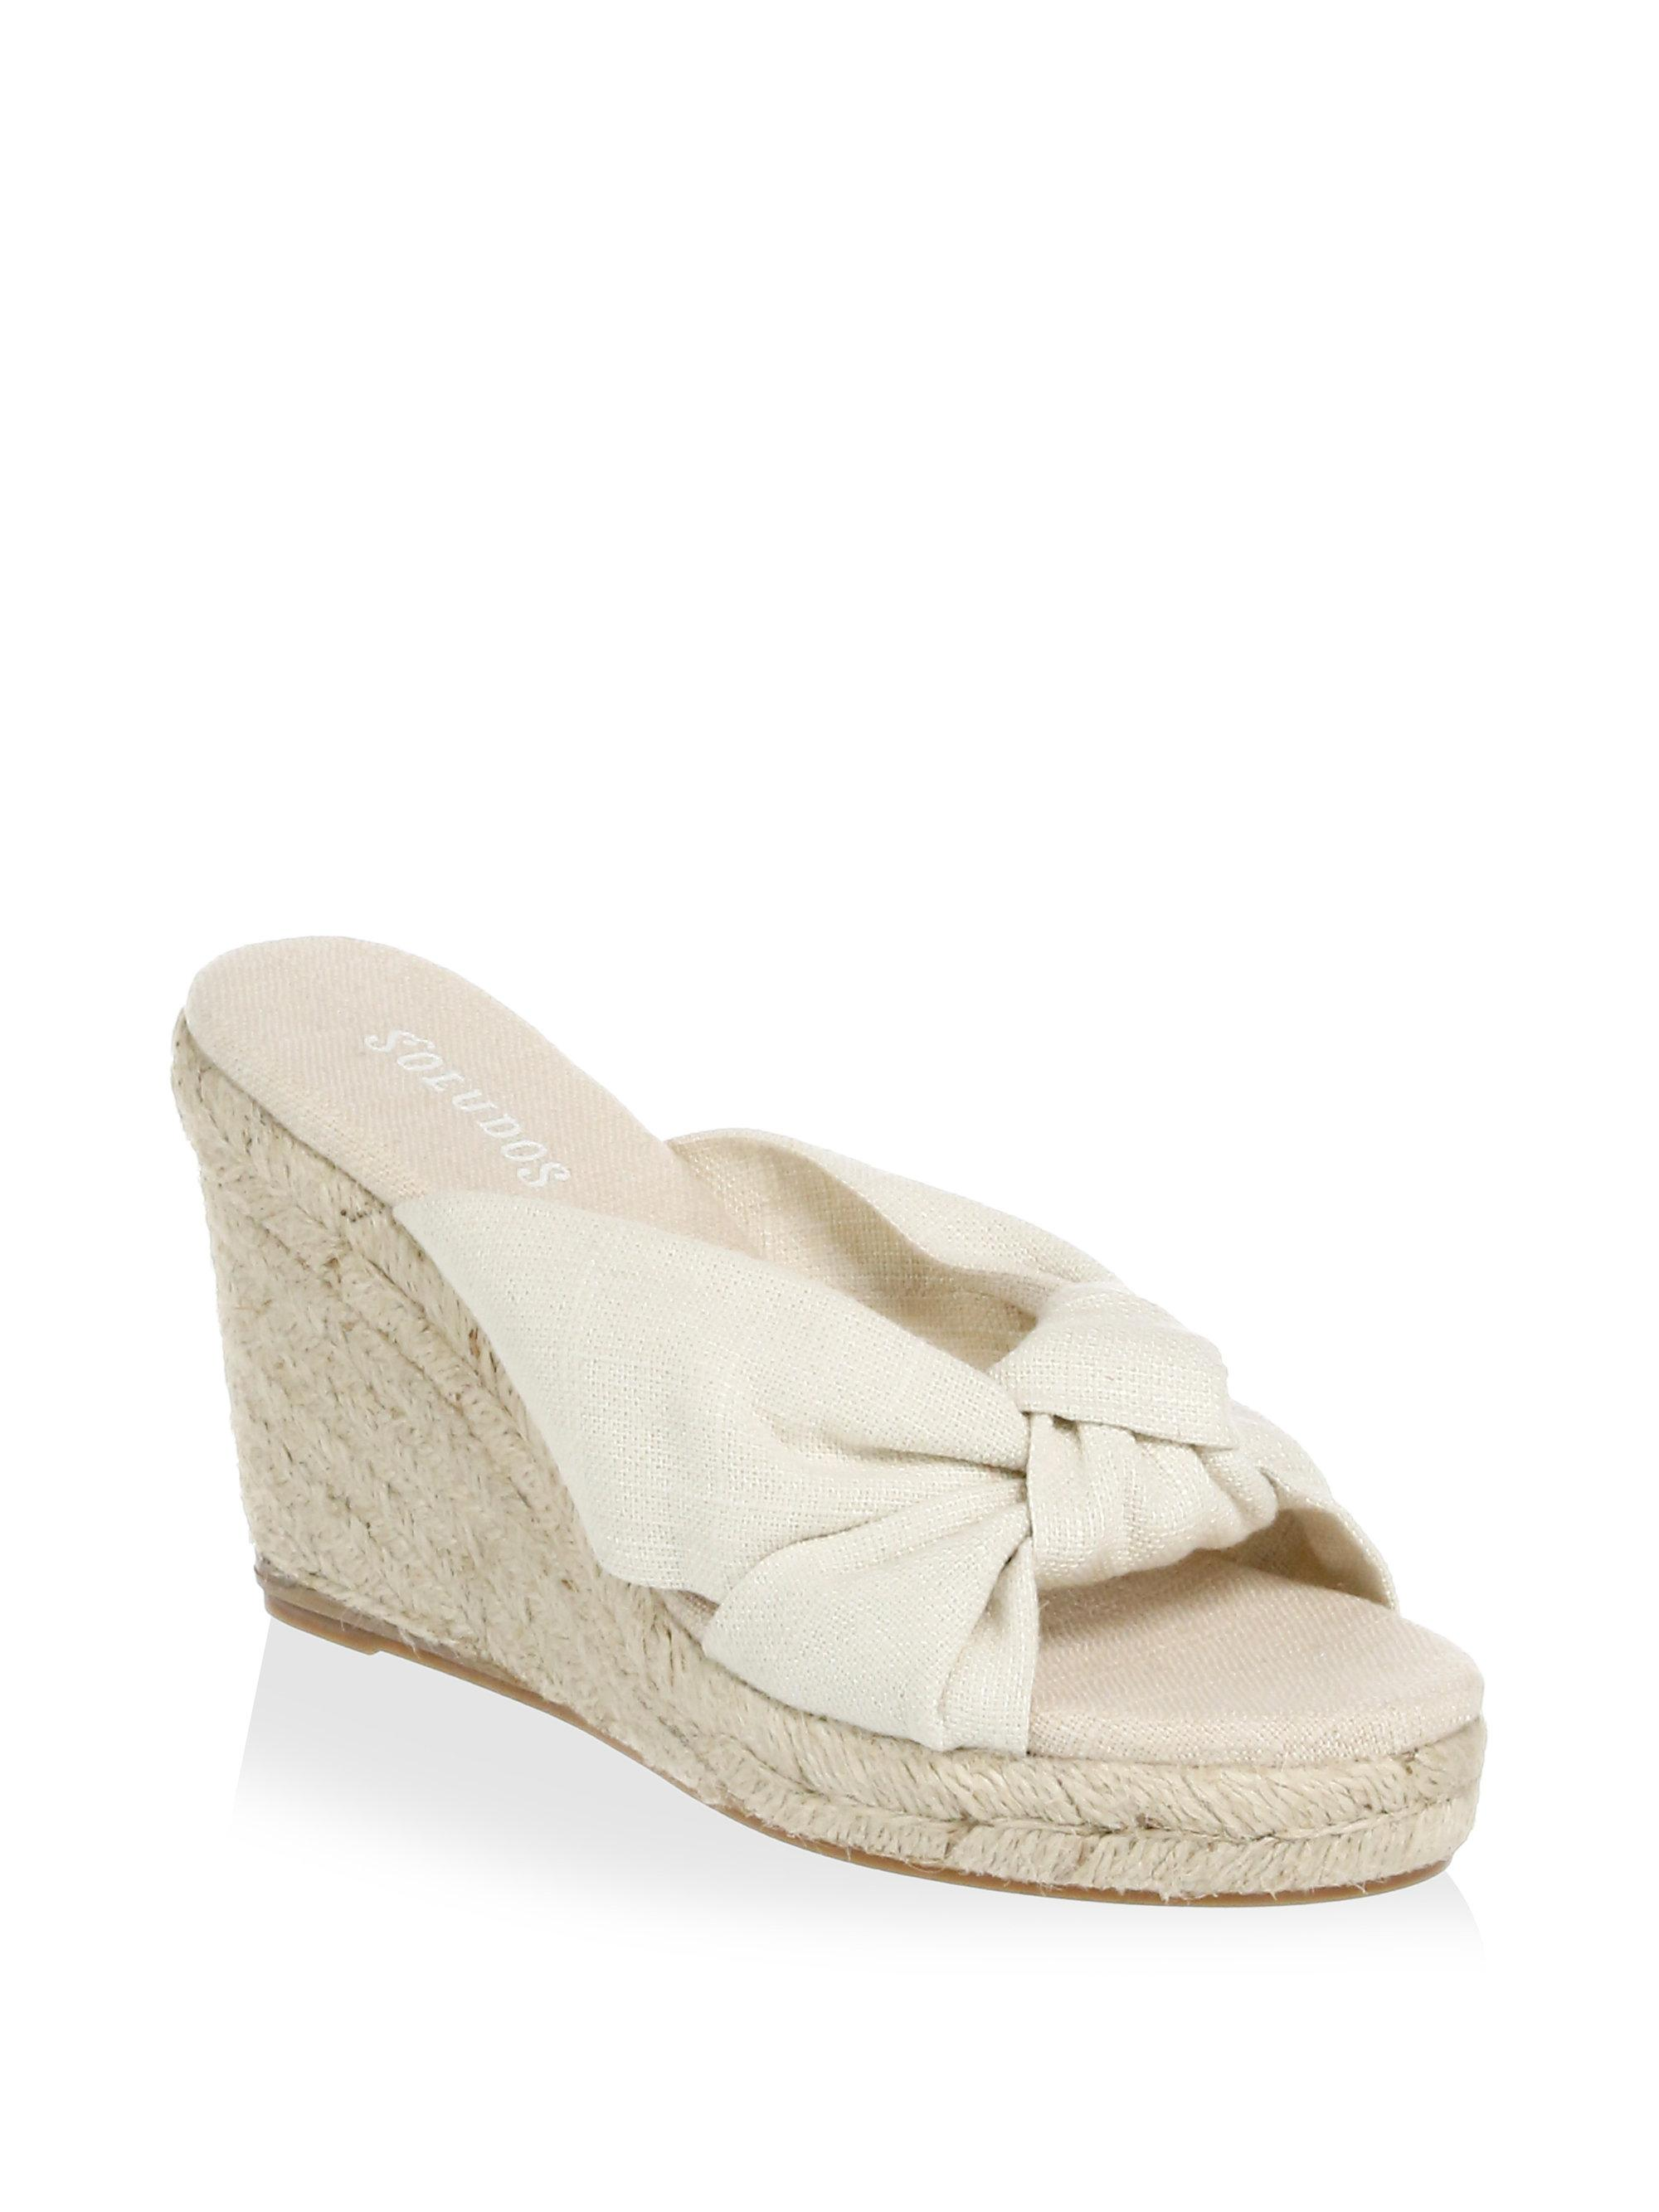 Soludos Knotted Wedge Sandals BGWna